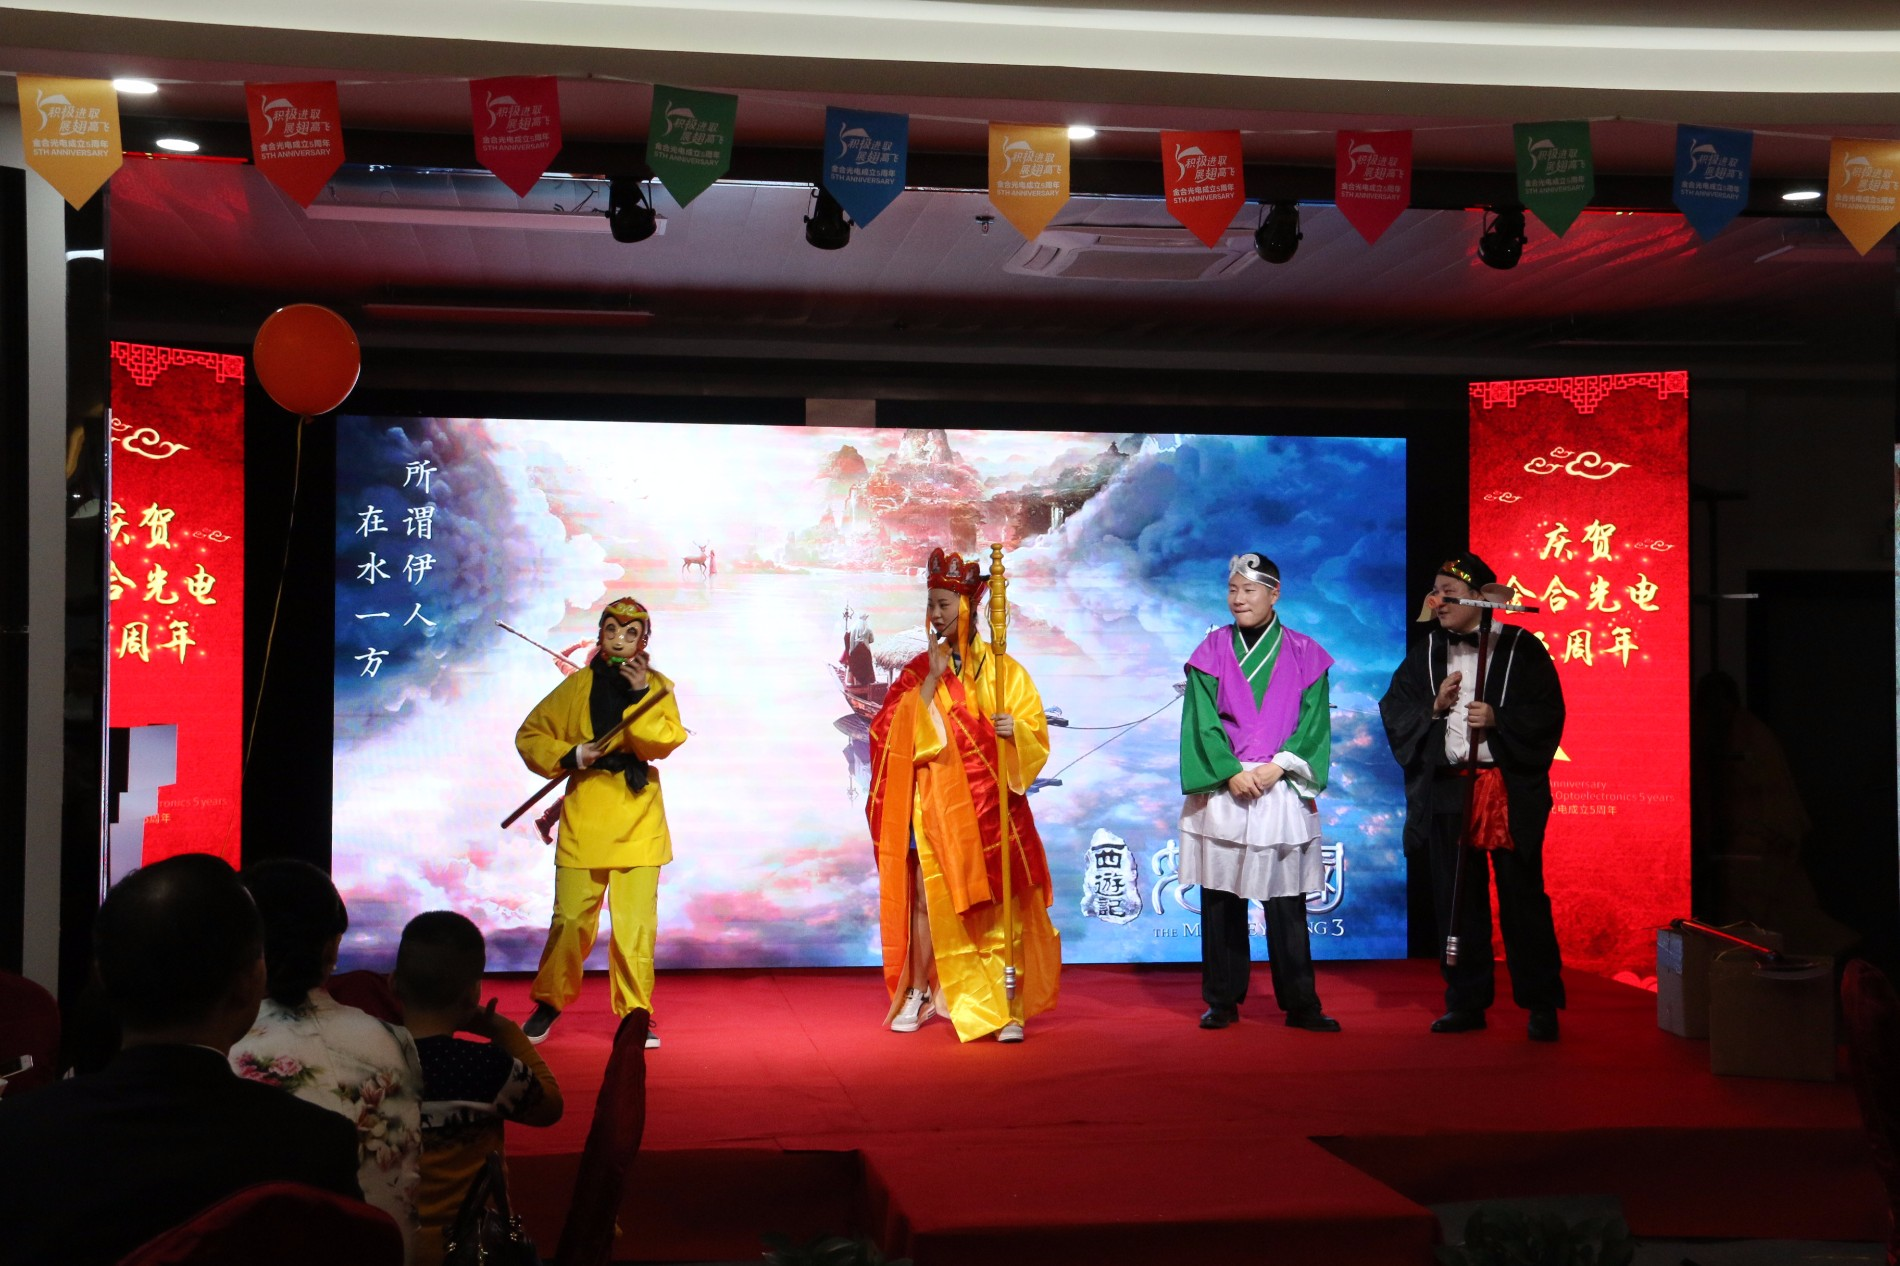 Celebration of the 5th anniversary of Shenzhen Jinhe Optoelectronics